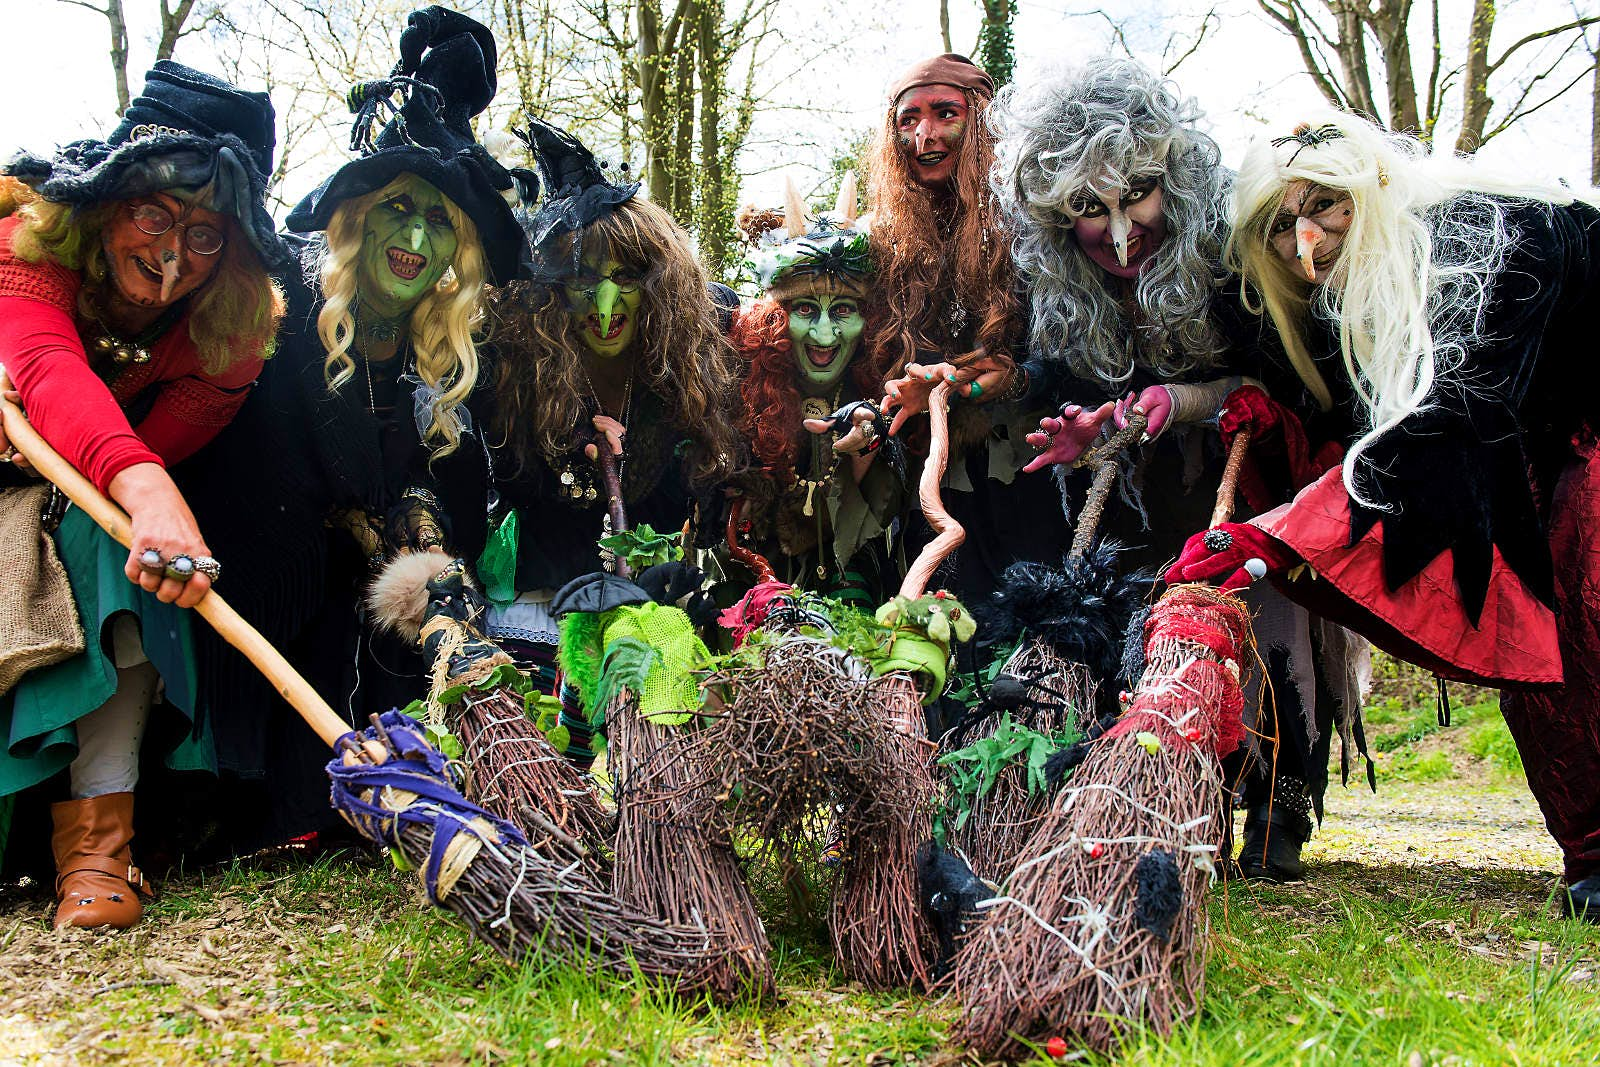 Seven women dressed in wigs and big hats, covered in face paint and fake noses and warts. They each hold a broom which they're pointing towards the camera.